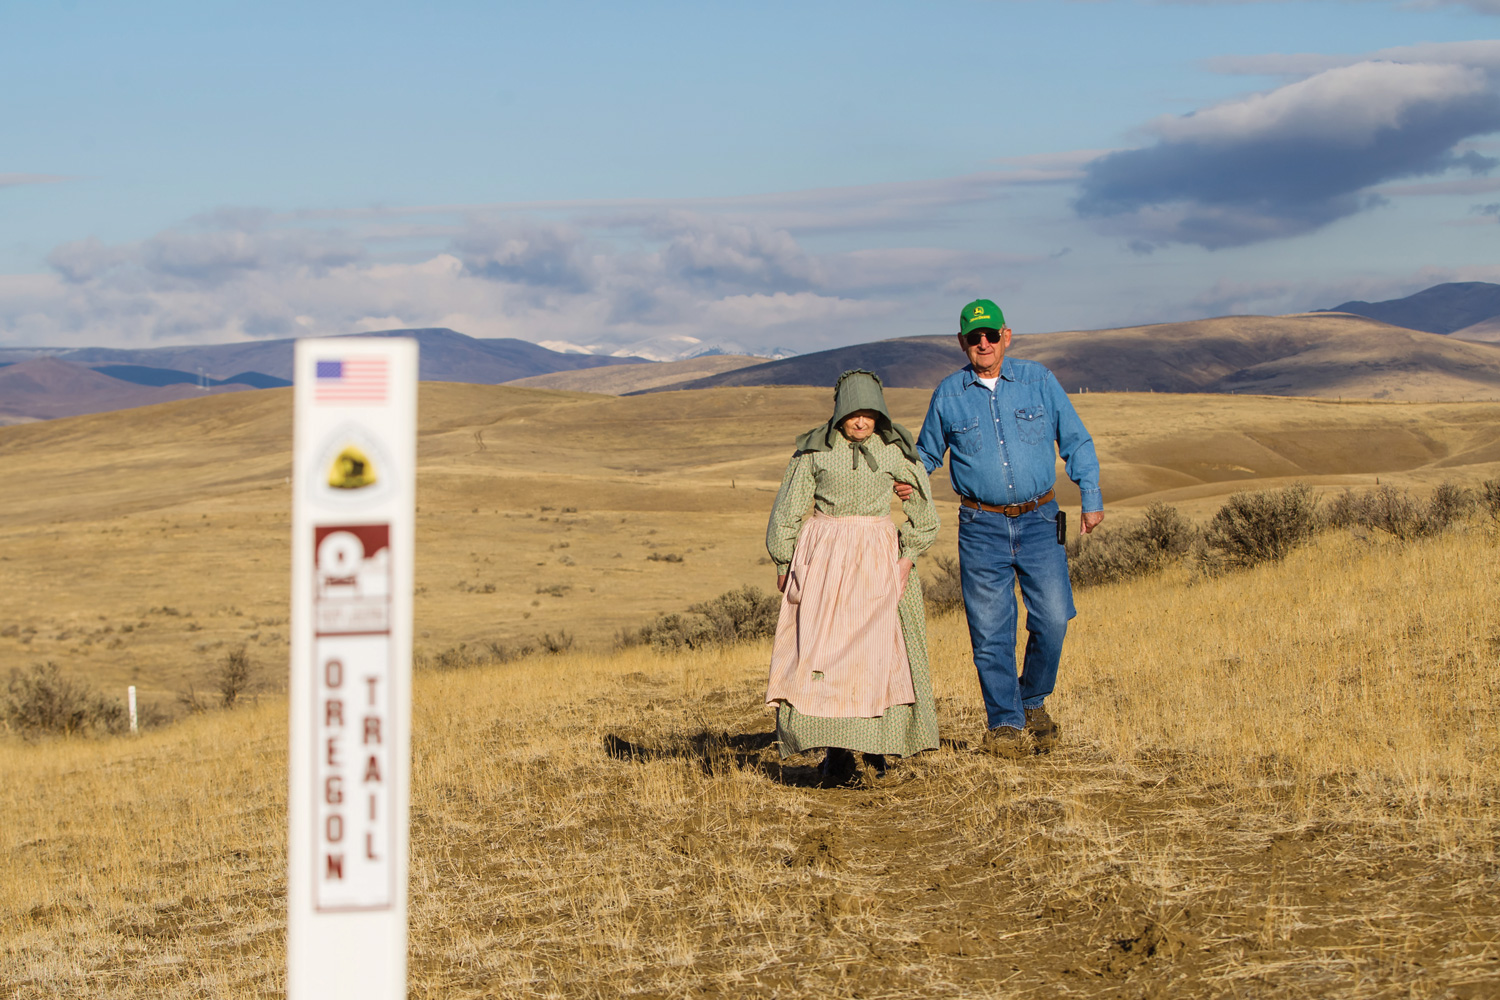 Muriel, In 1852 Period Garb, And Gail Carbiener, Who Have Helped Erect Oregon  Trail Signs And Markers, Walk On The Oregon Trail At Birch Creek